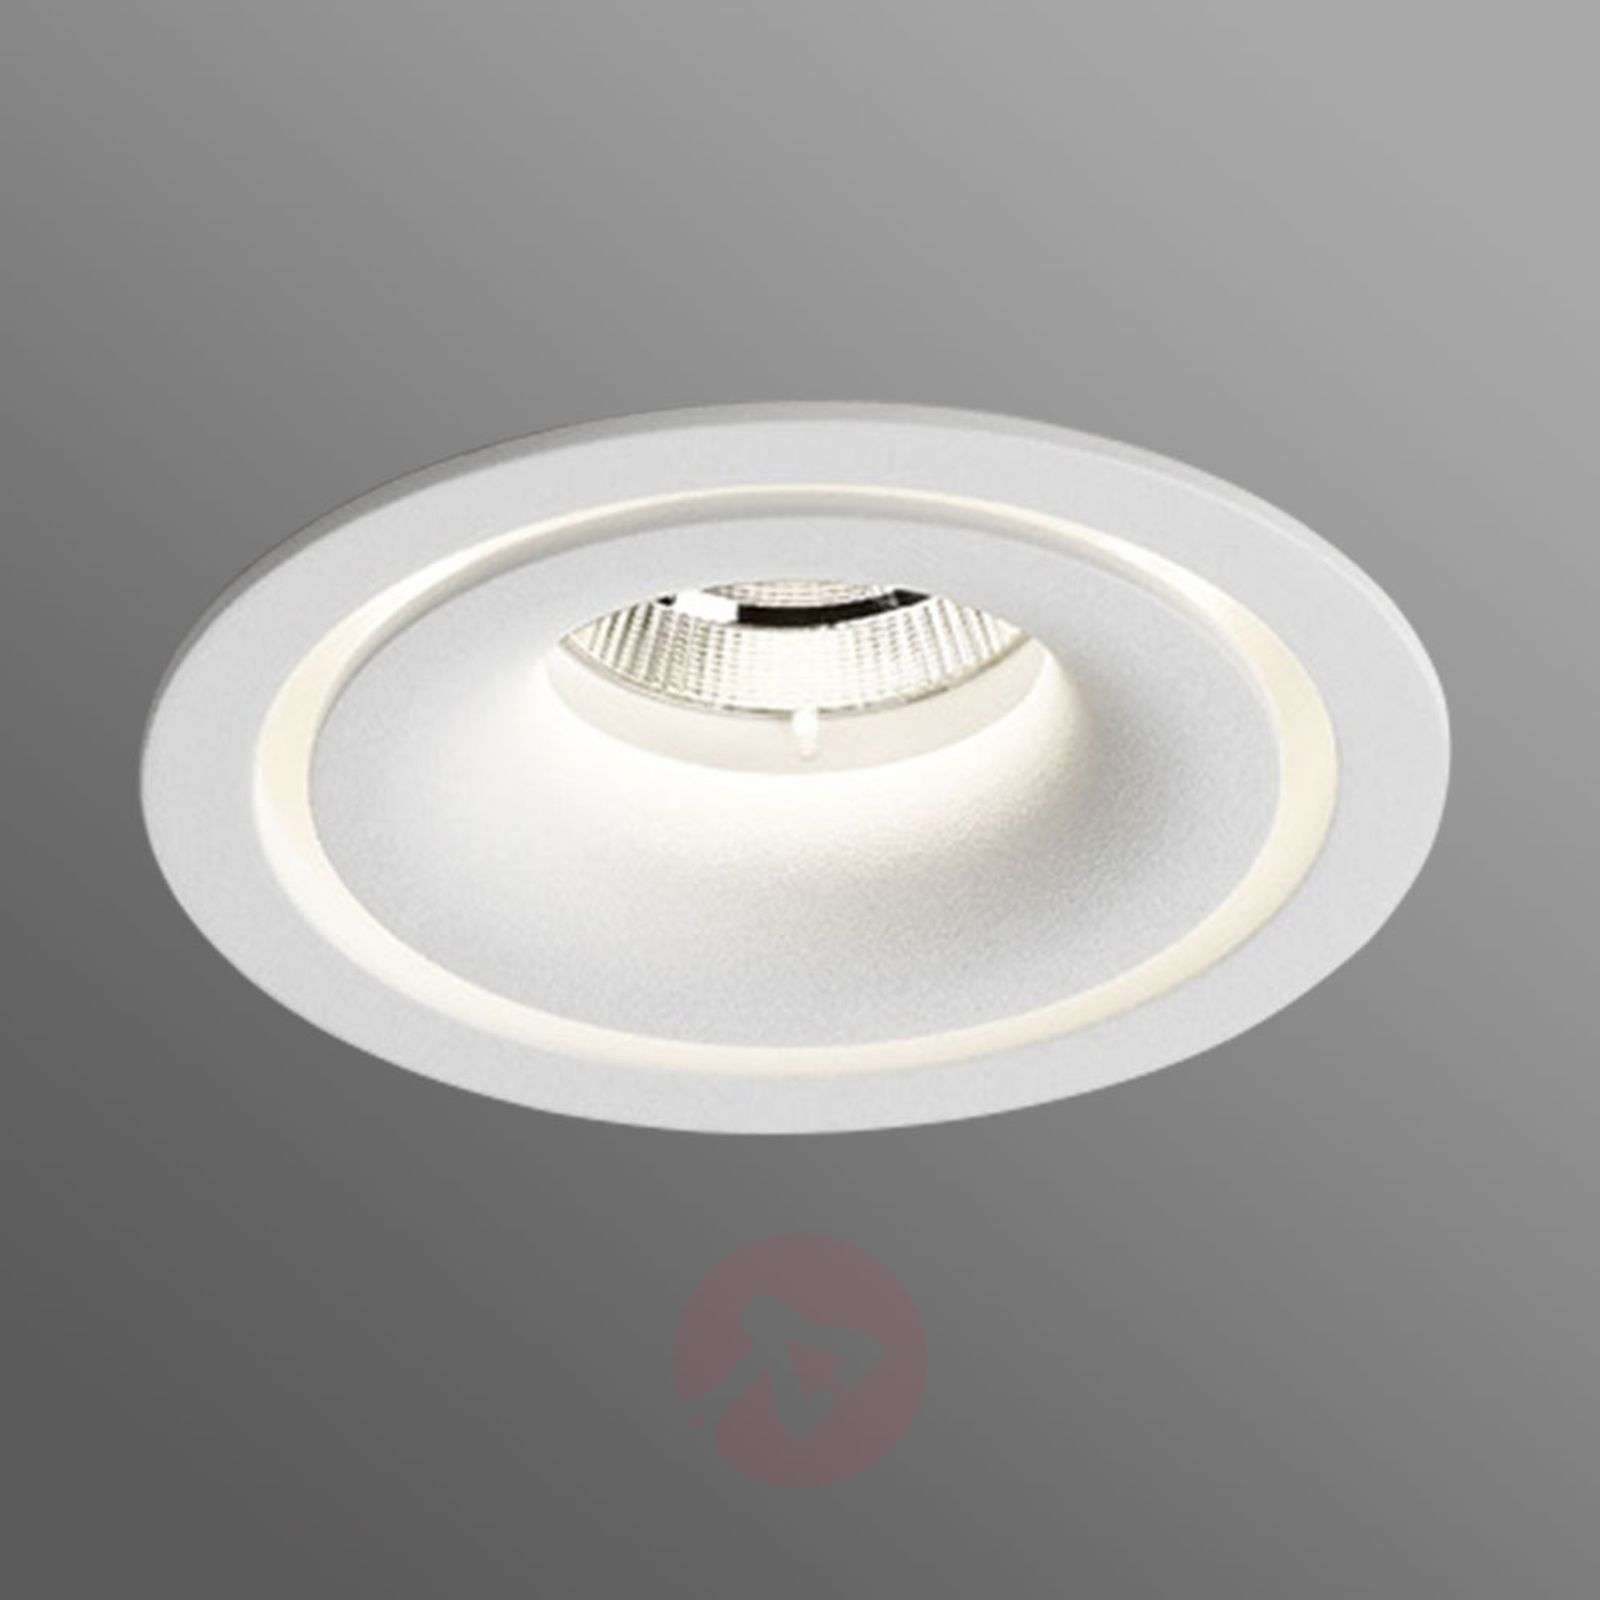 Lampa do montażu LED Orea 3033 S1-2520004-01